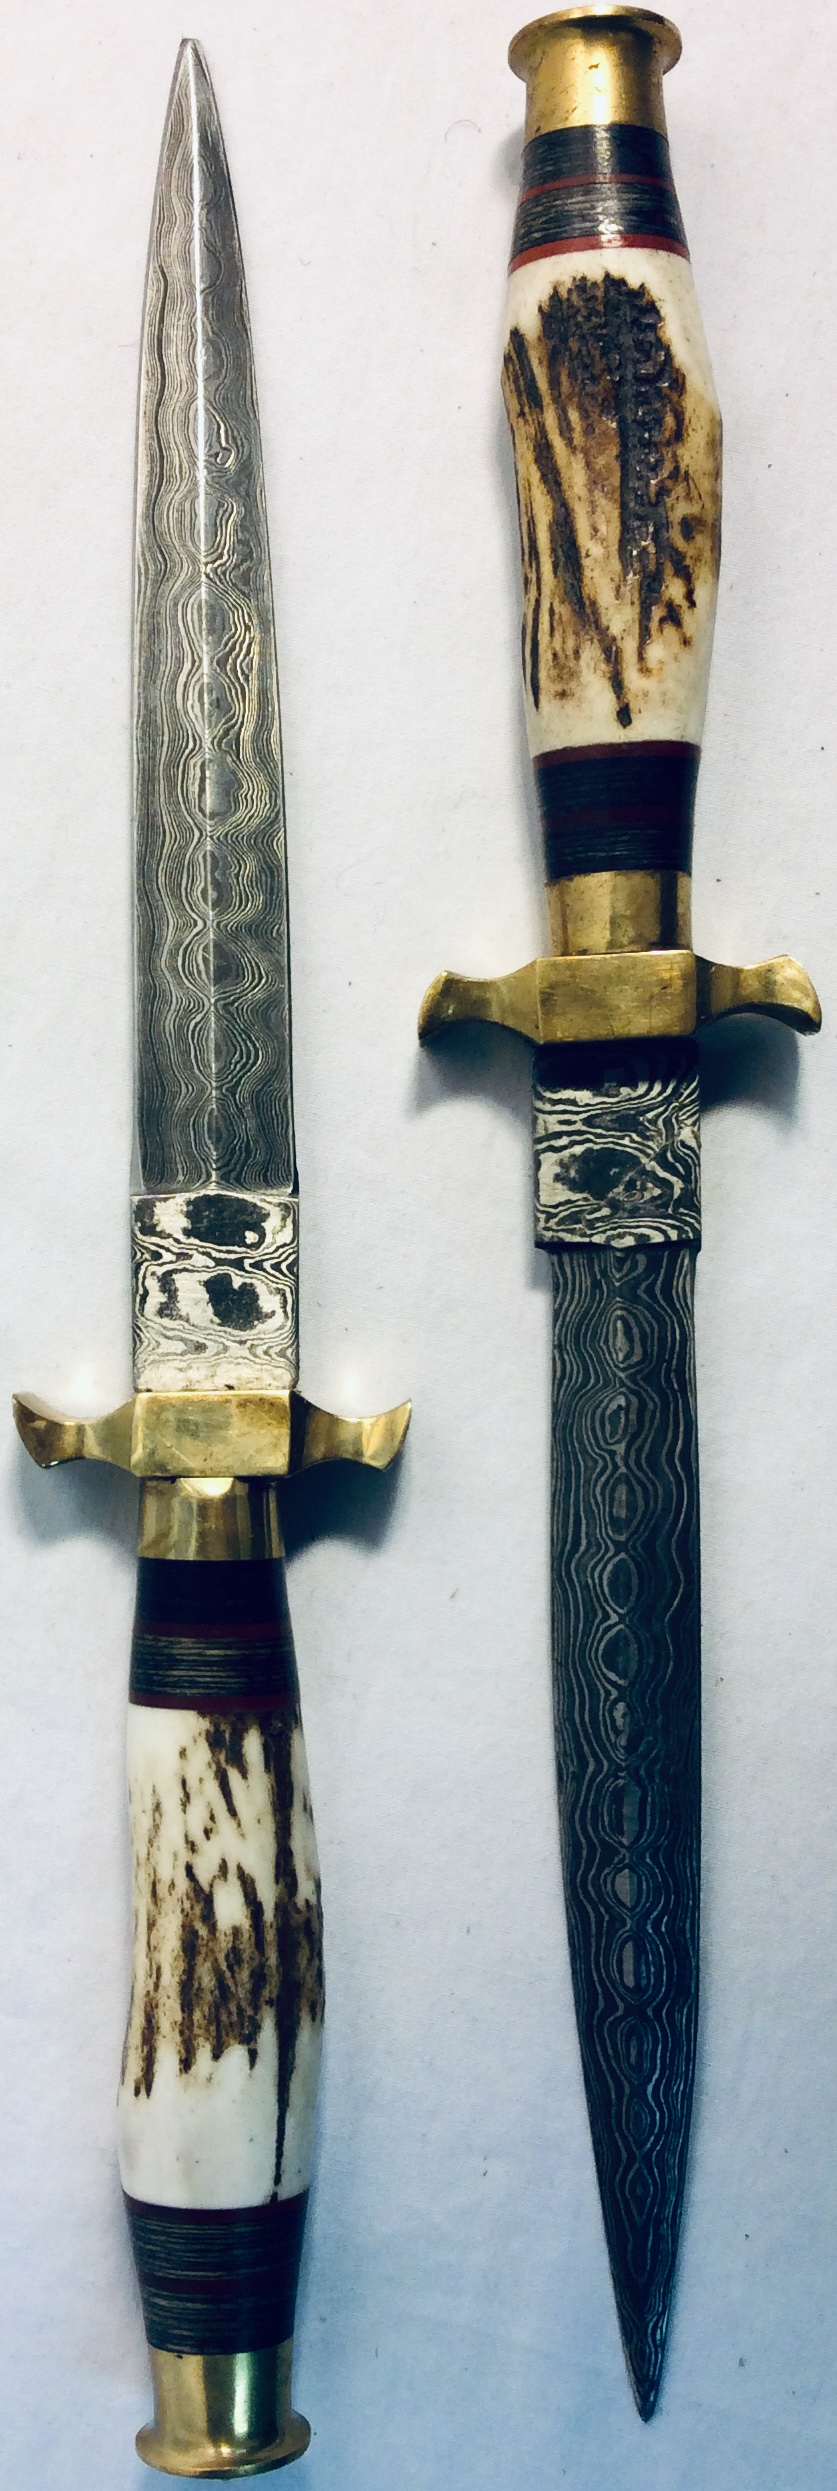 Ritual dagger with ornamented blade and faux bone handle